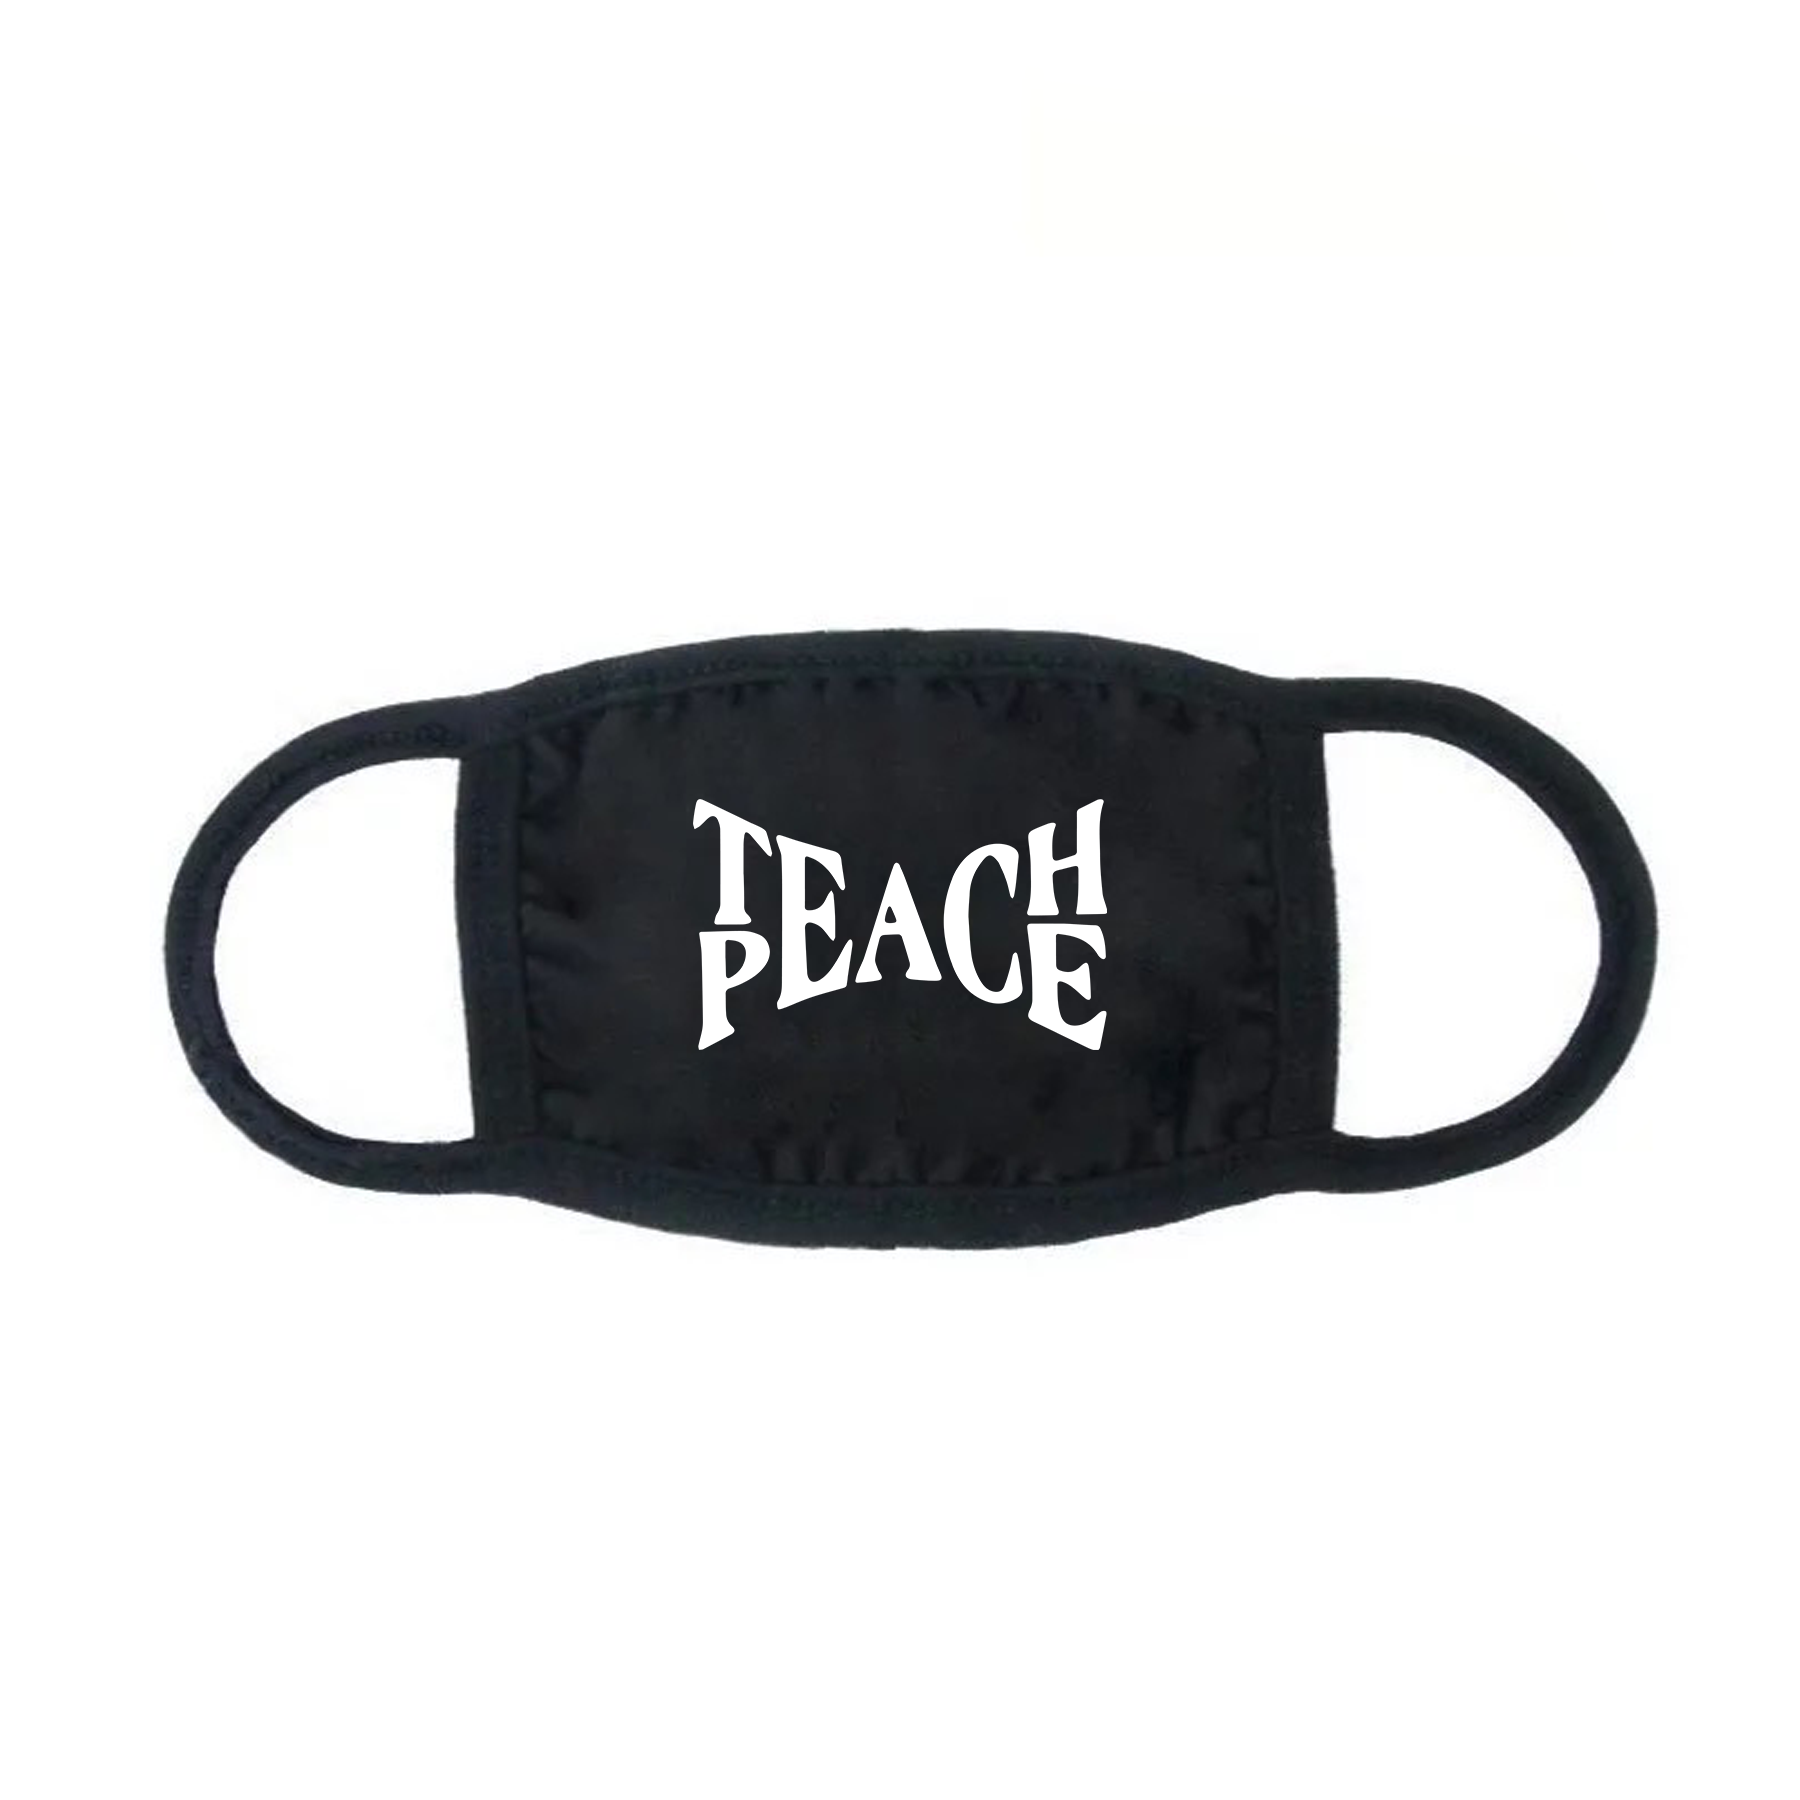 Teach Peace Black Face Mask